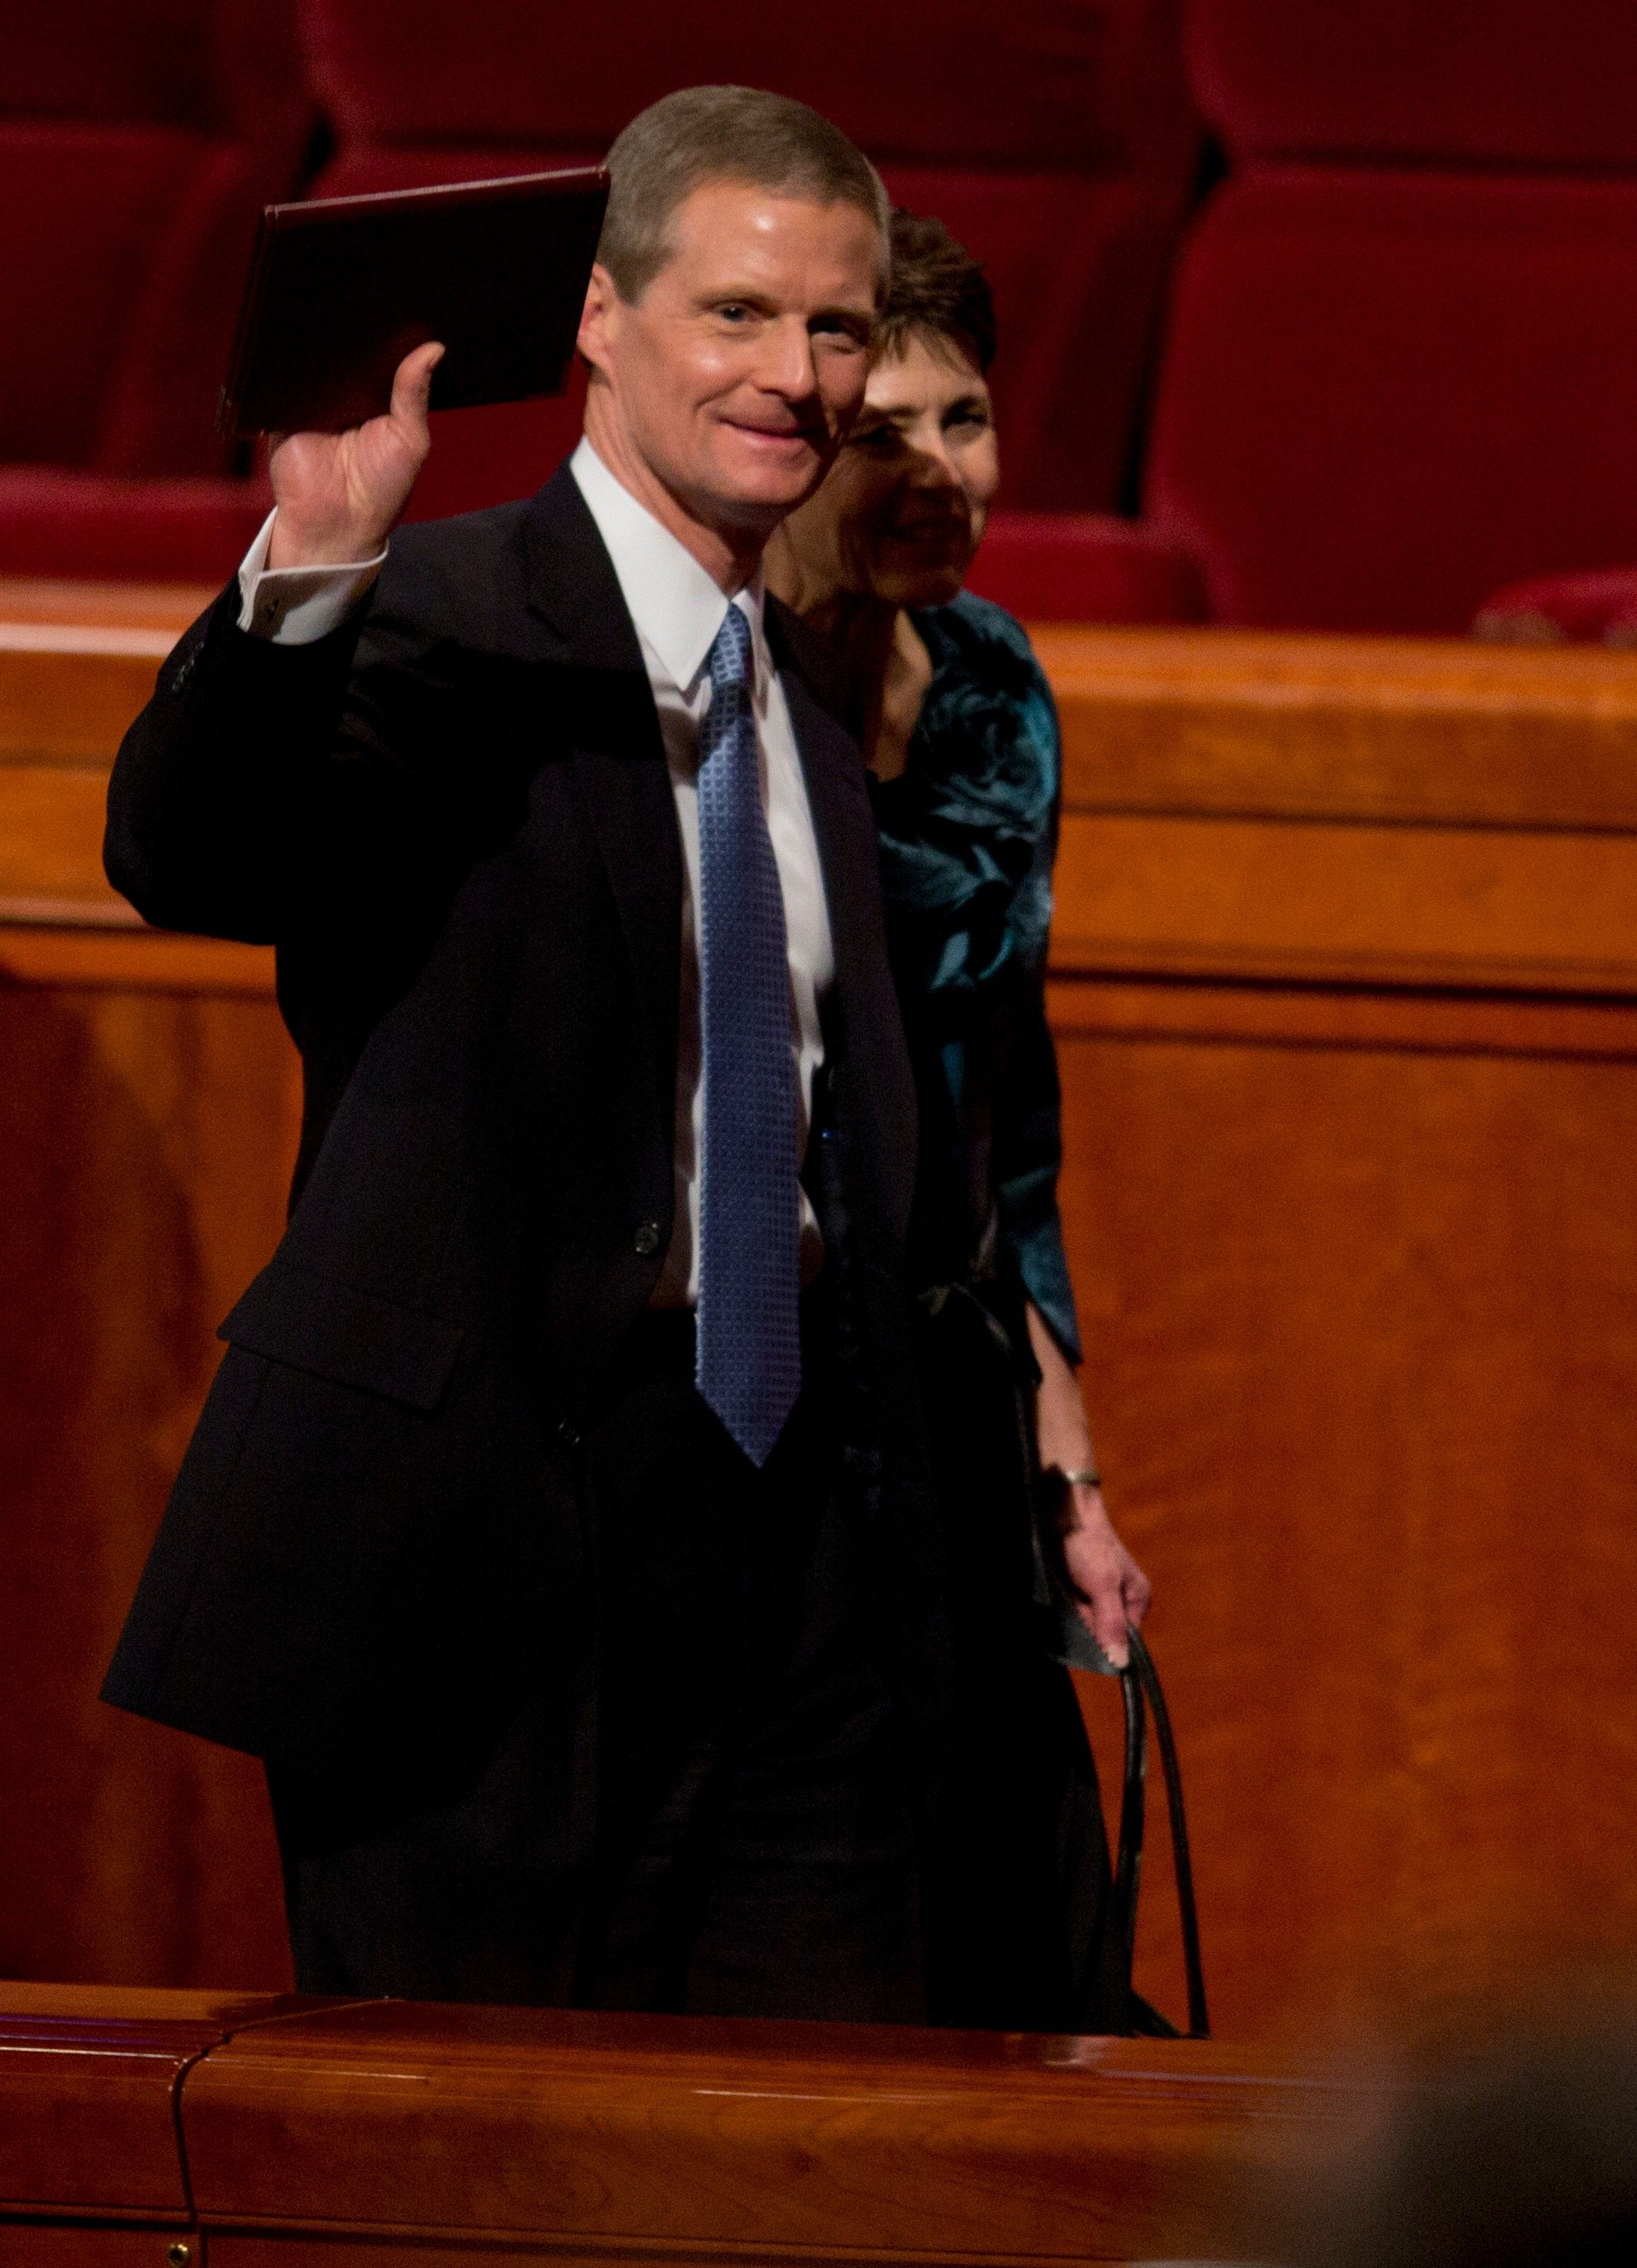 David A. Bednar waving to the congregation as he exits the Conference Center alongside his wife, Susan.